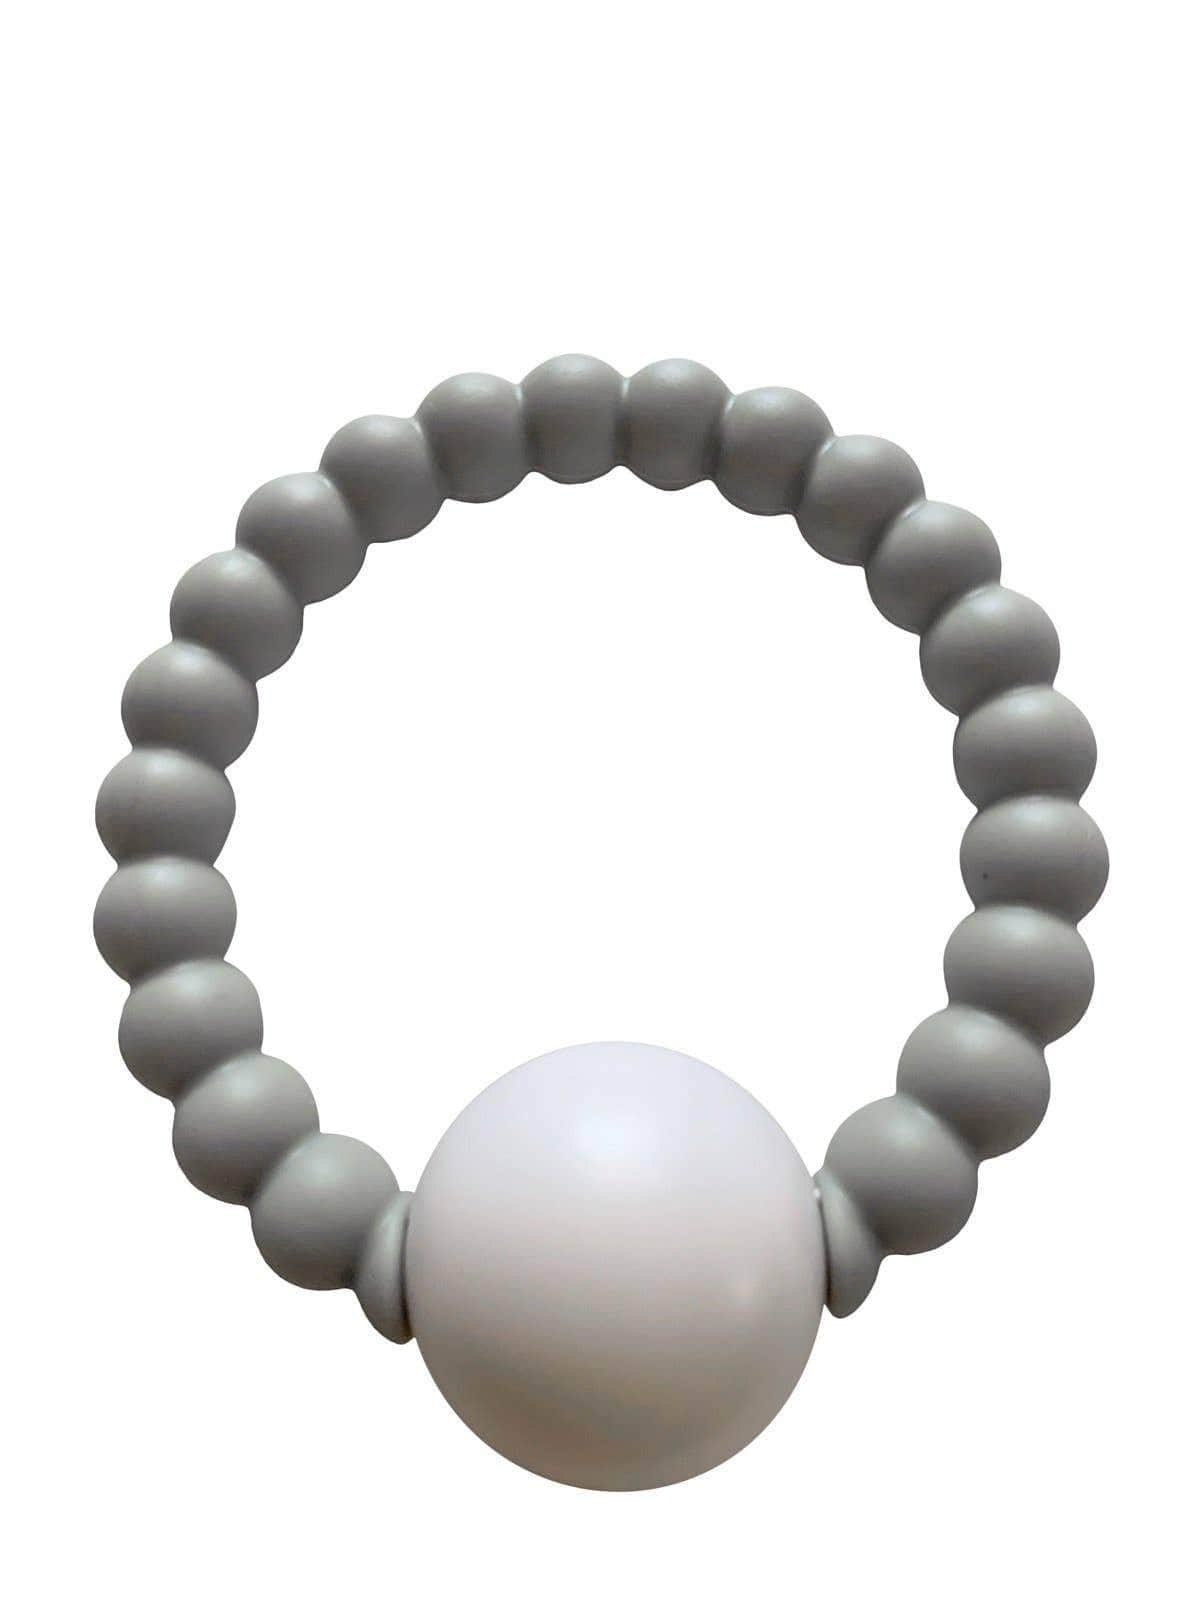 Chewable Charm Teether Toy Rattle - Grey CCR191